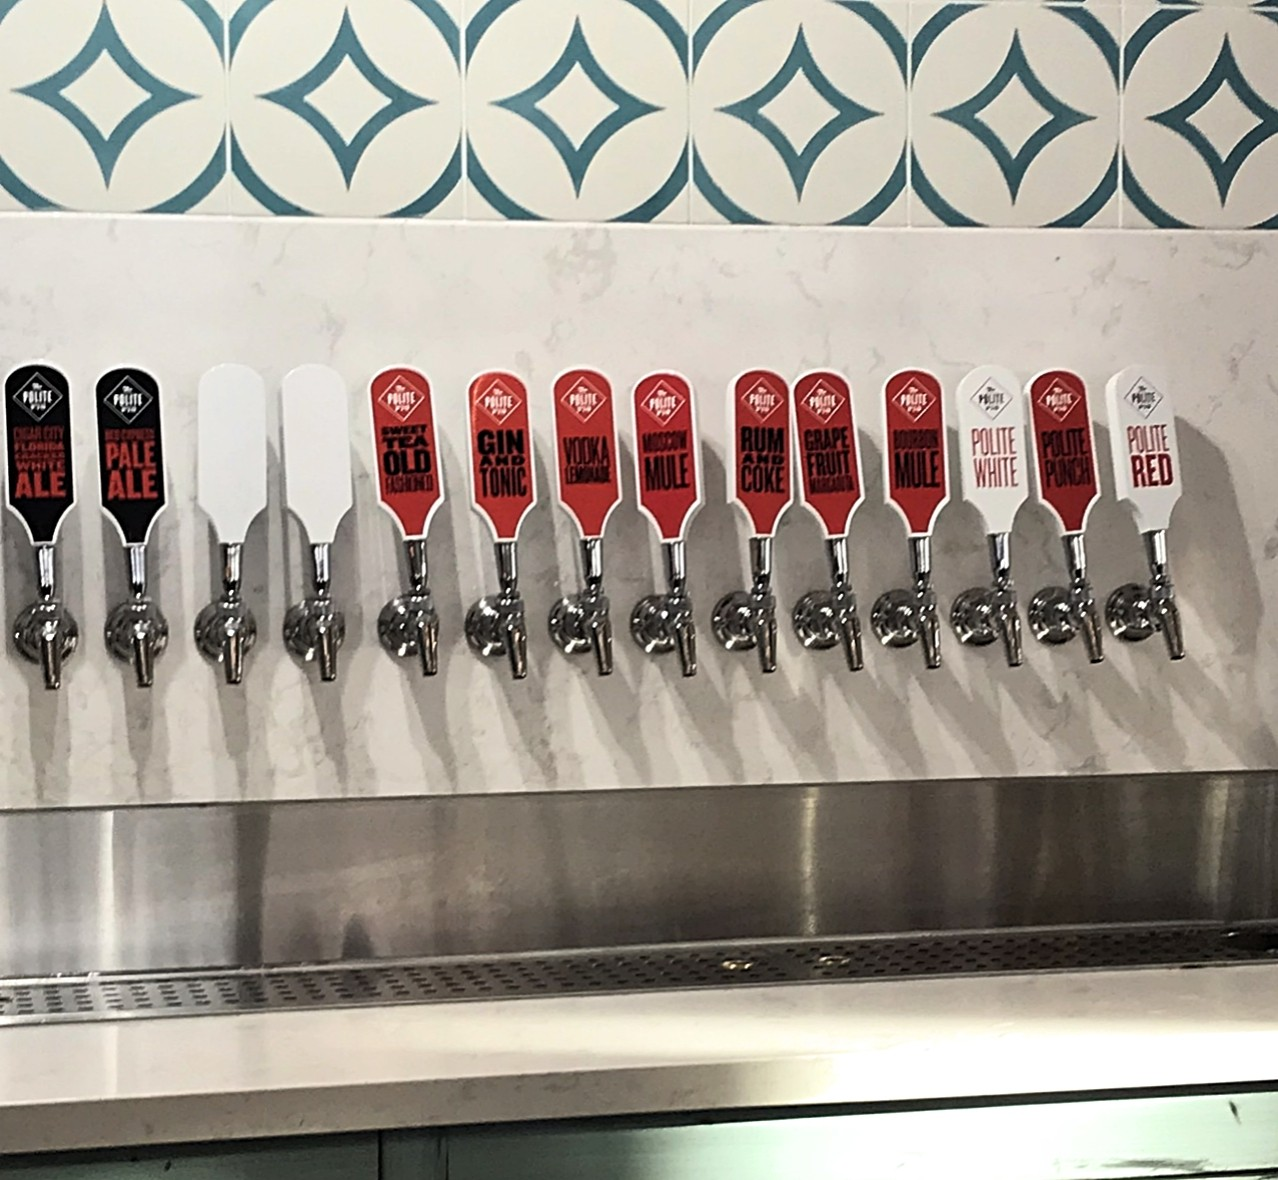 14 different beers on tap